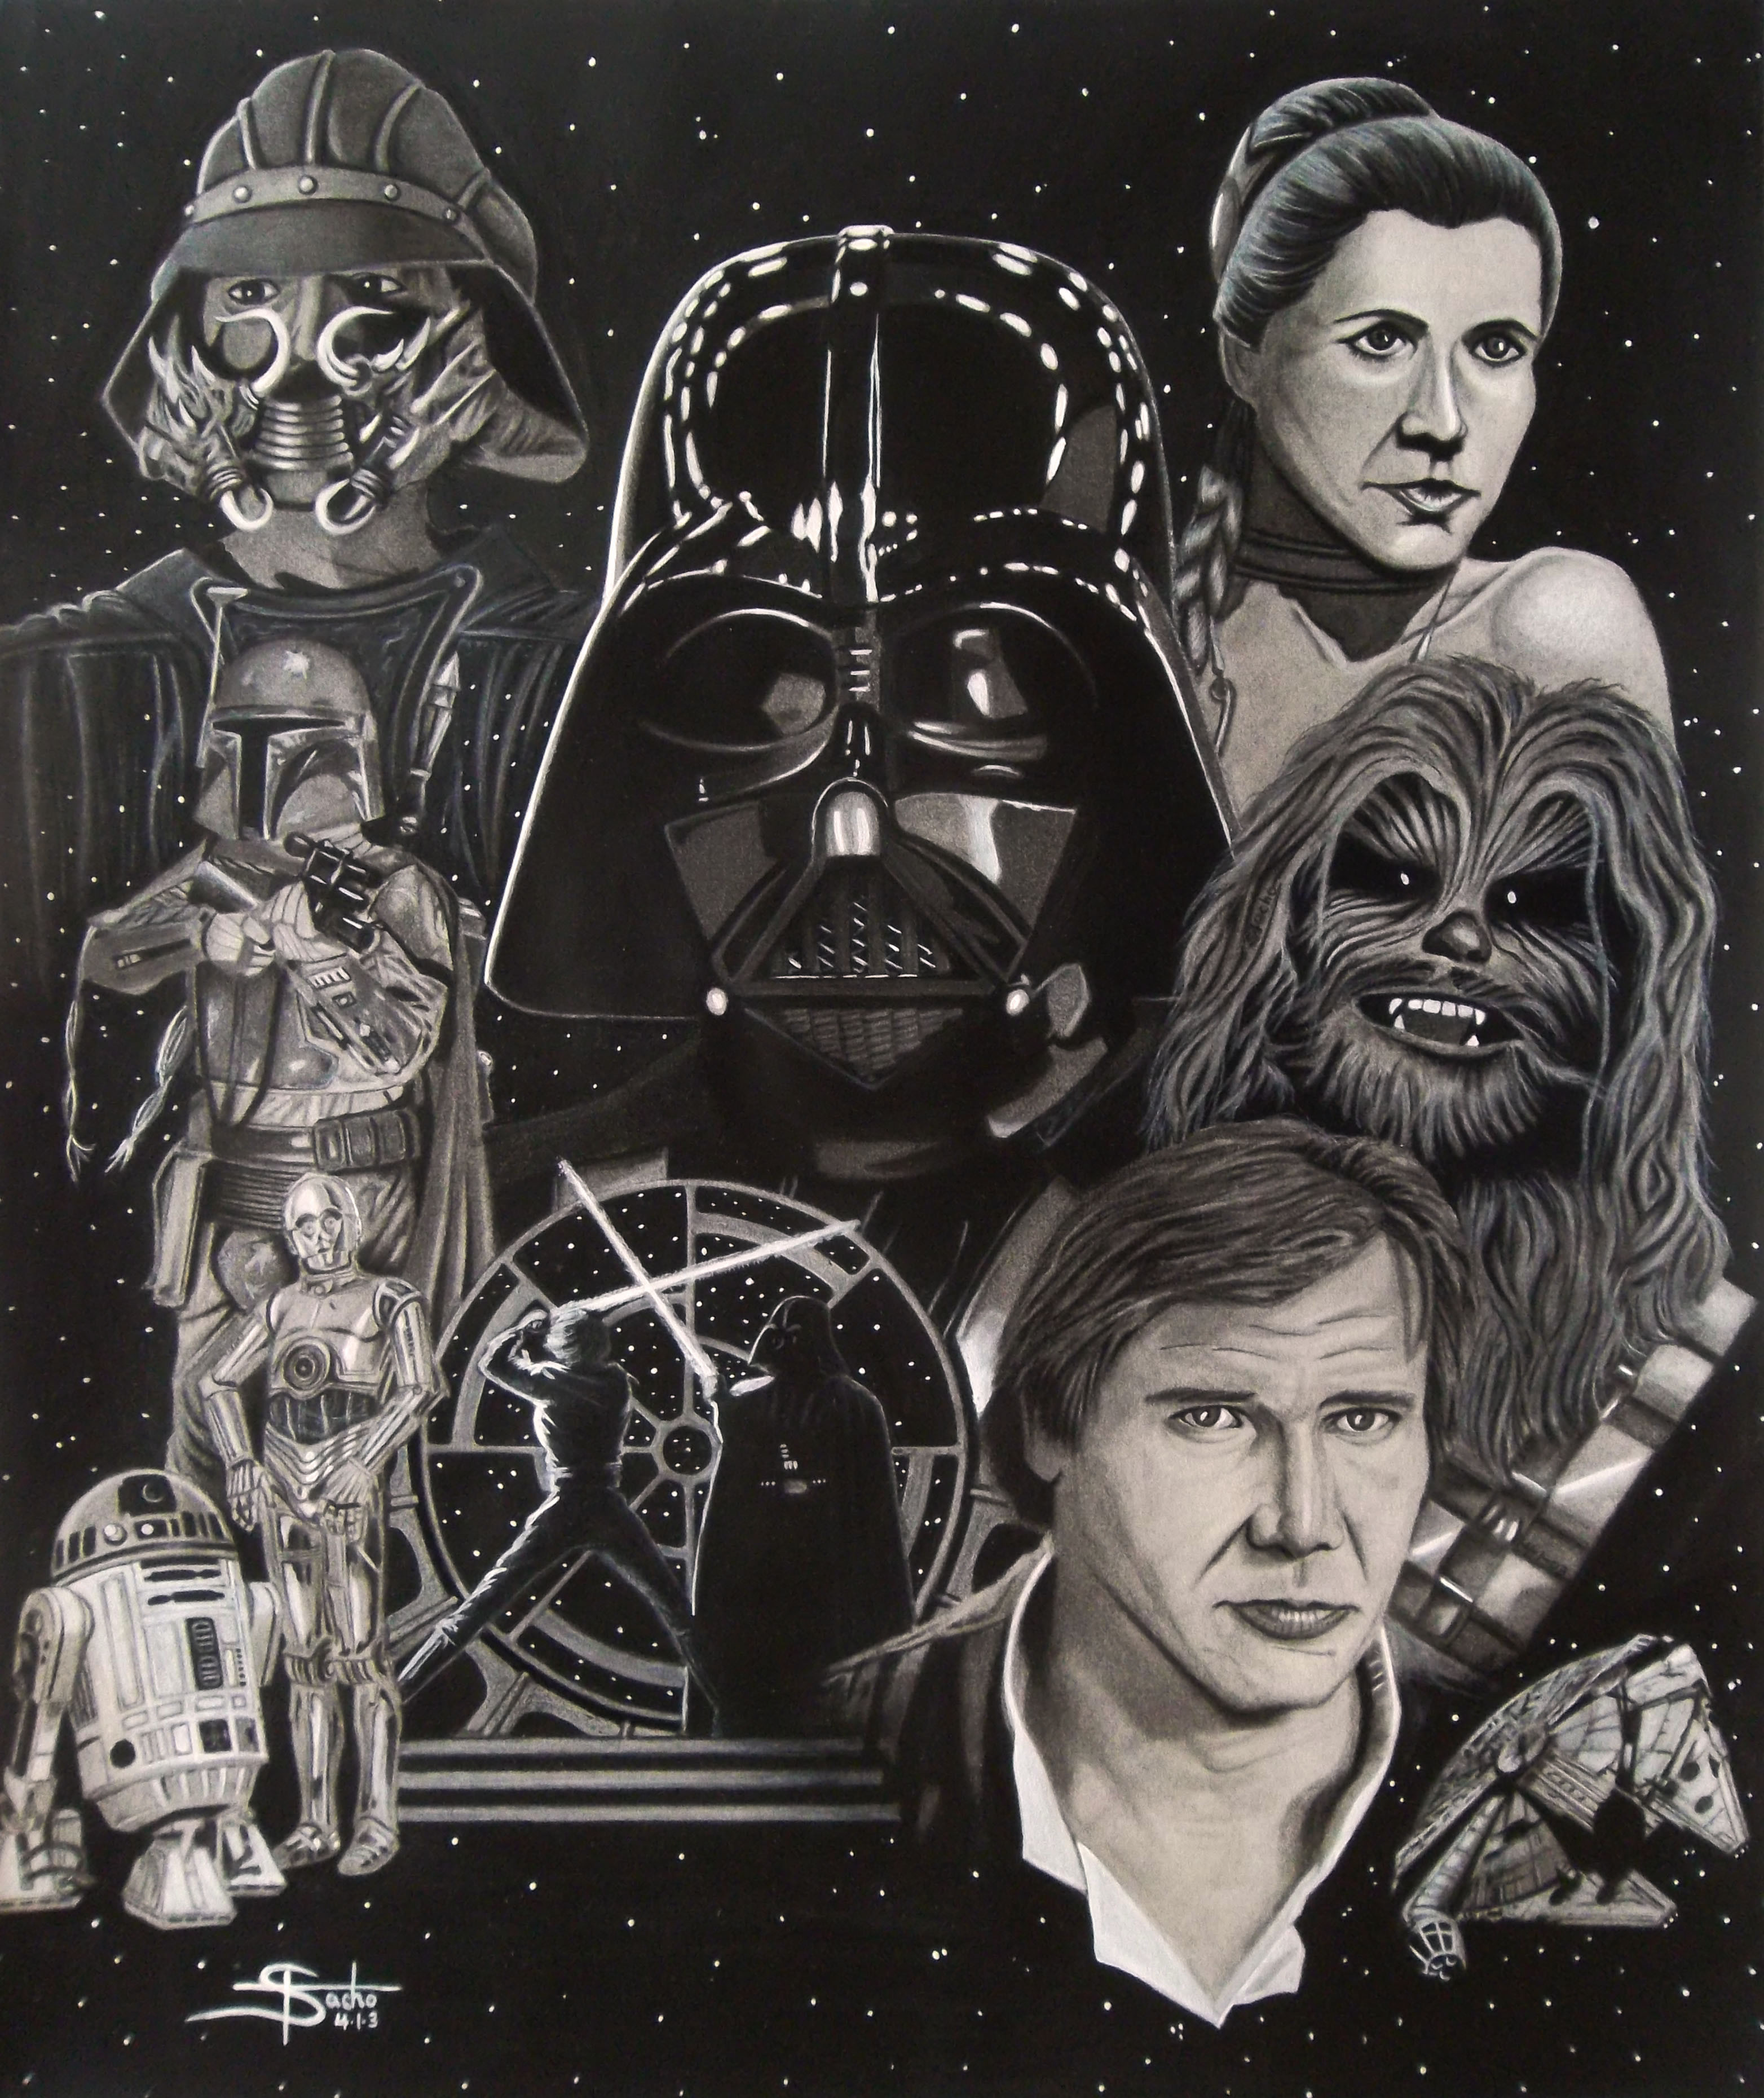 """Return of the Jedi """"This was my most favorite Star Wars movie as a kid."""""""